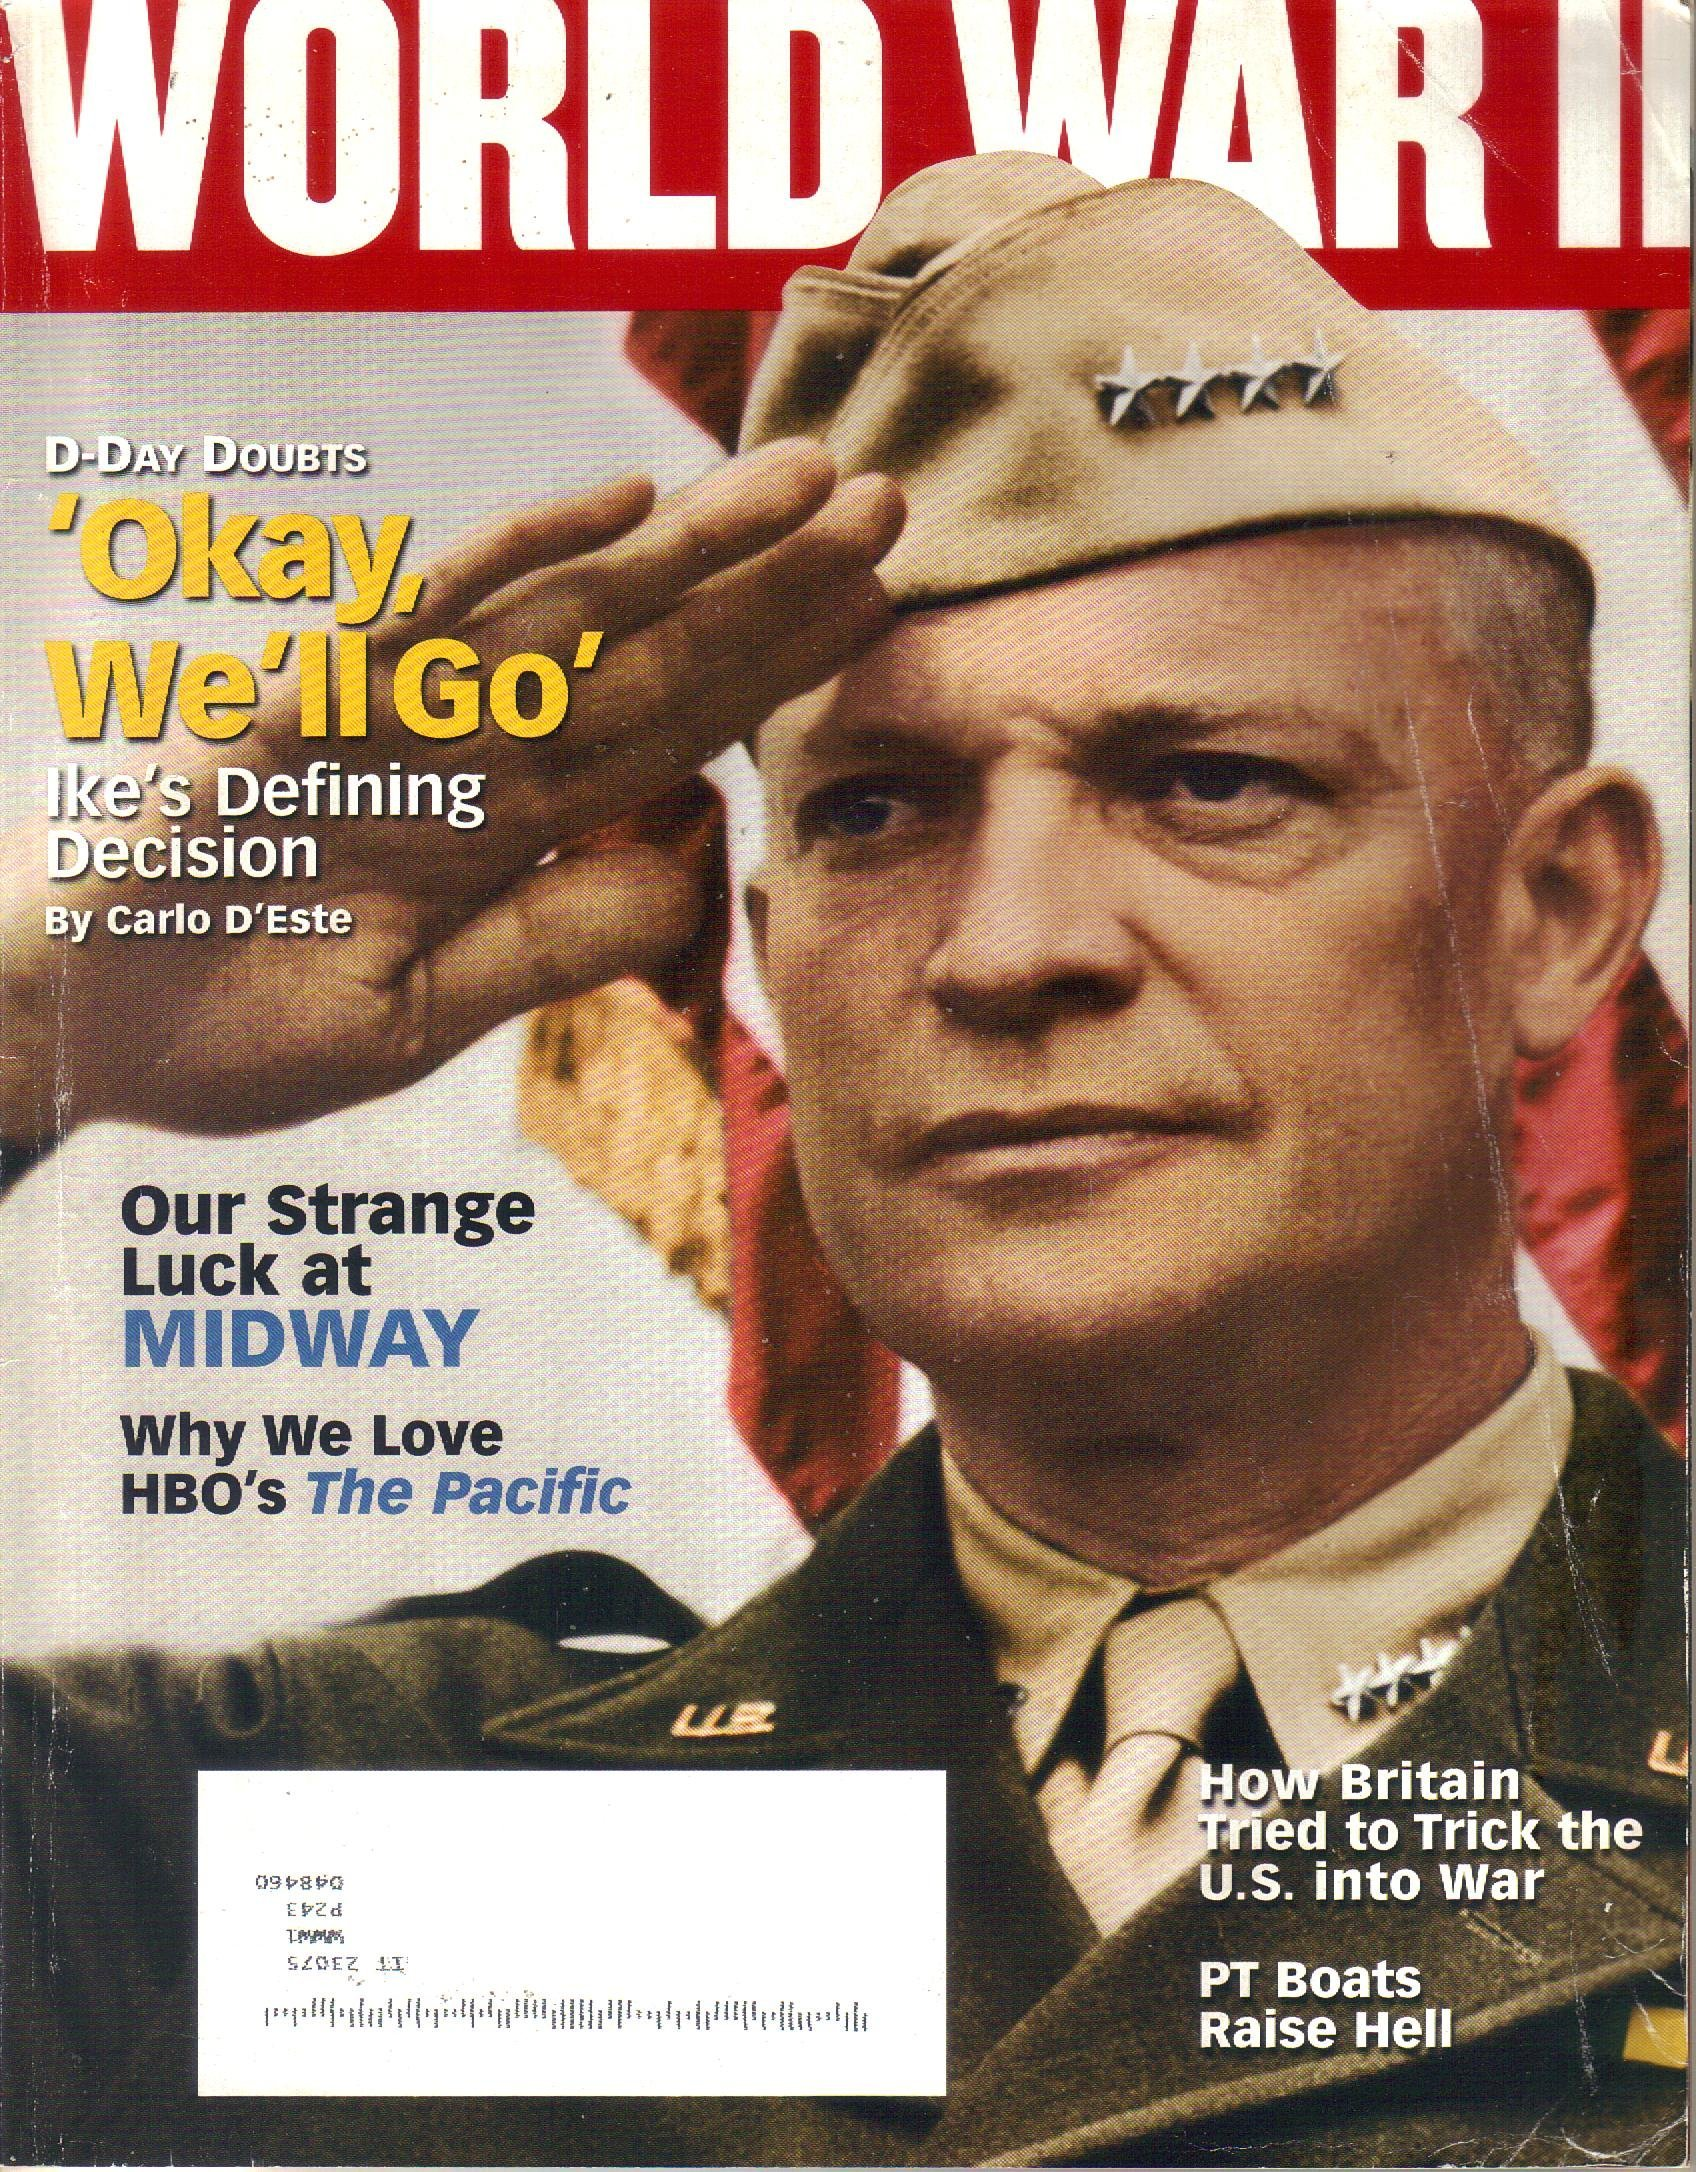 "Read Online World War II Magazine May / June 2010 Volume 25 Number 1 ""D-Day Doubts"" PDF"